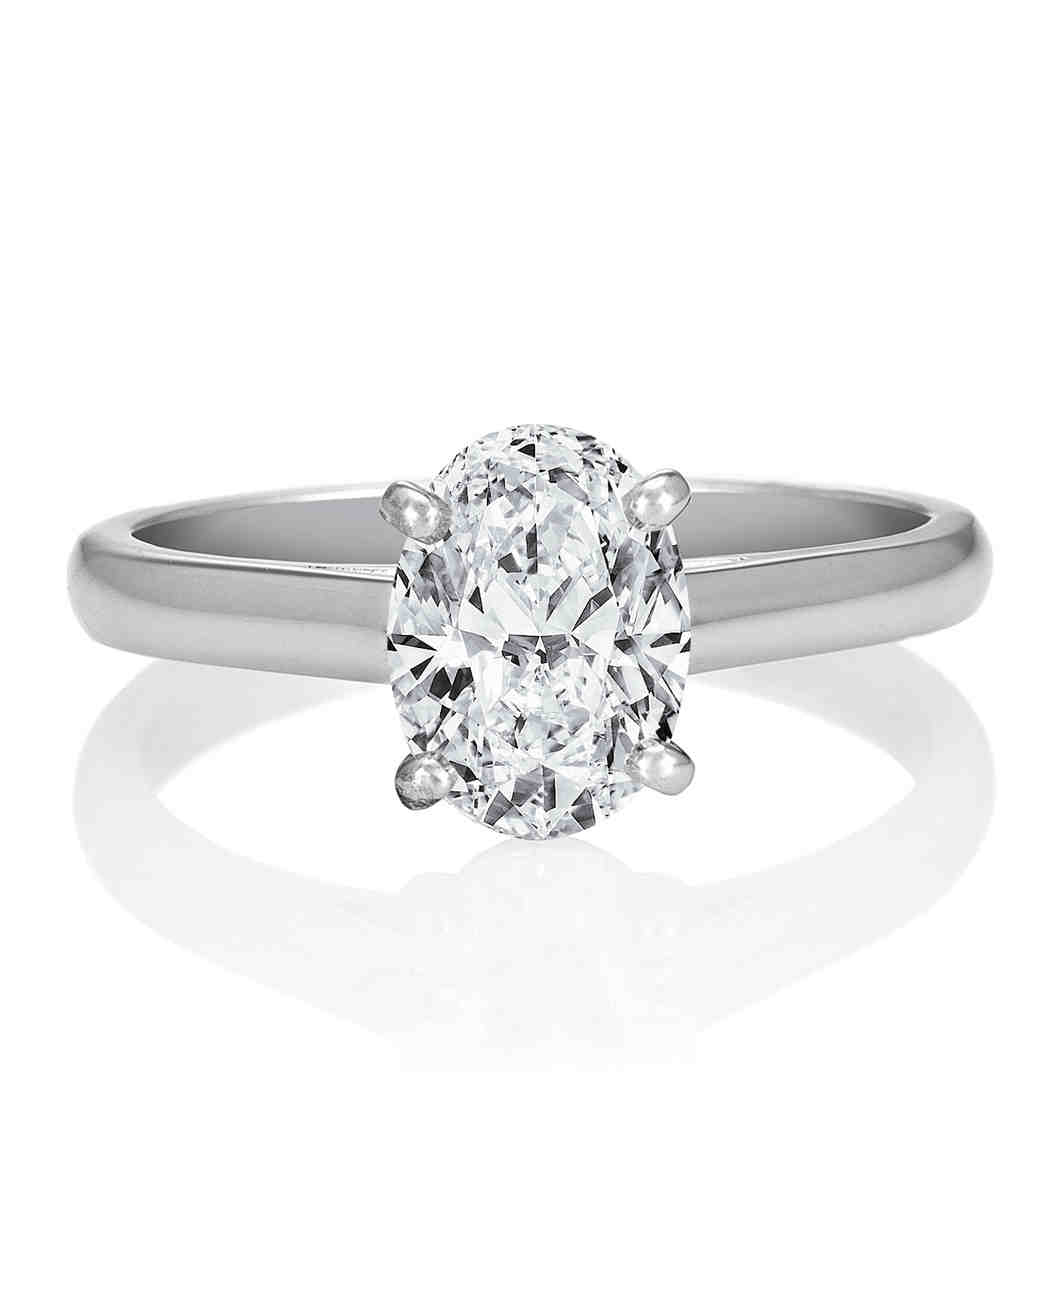 Oval Engagement Rings for the BridetoBe  Martha Stewart